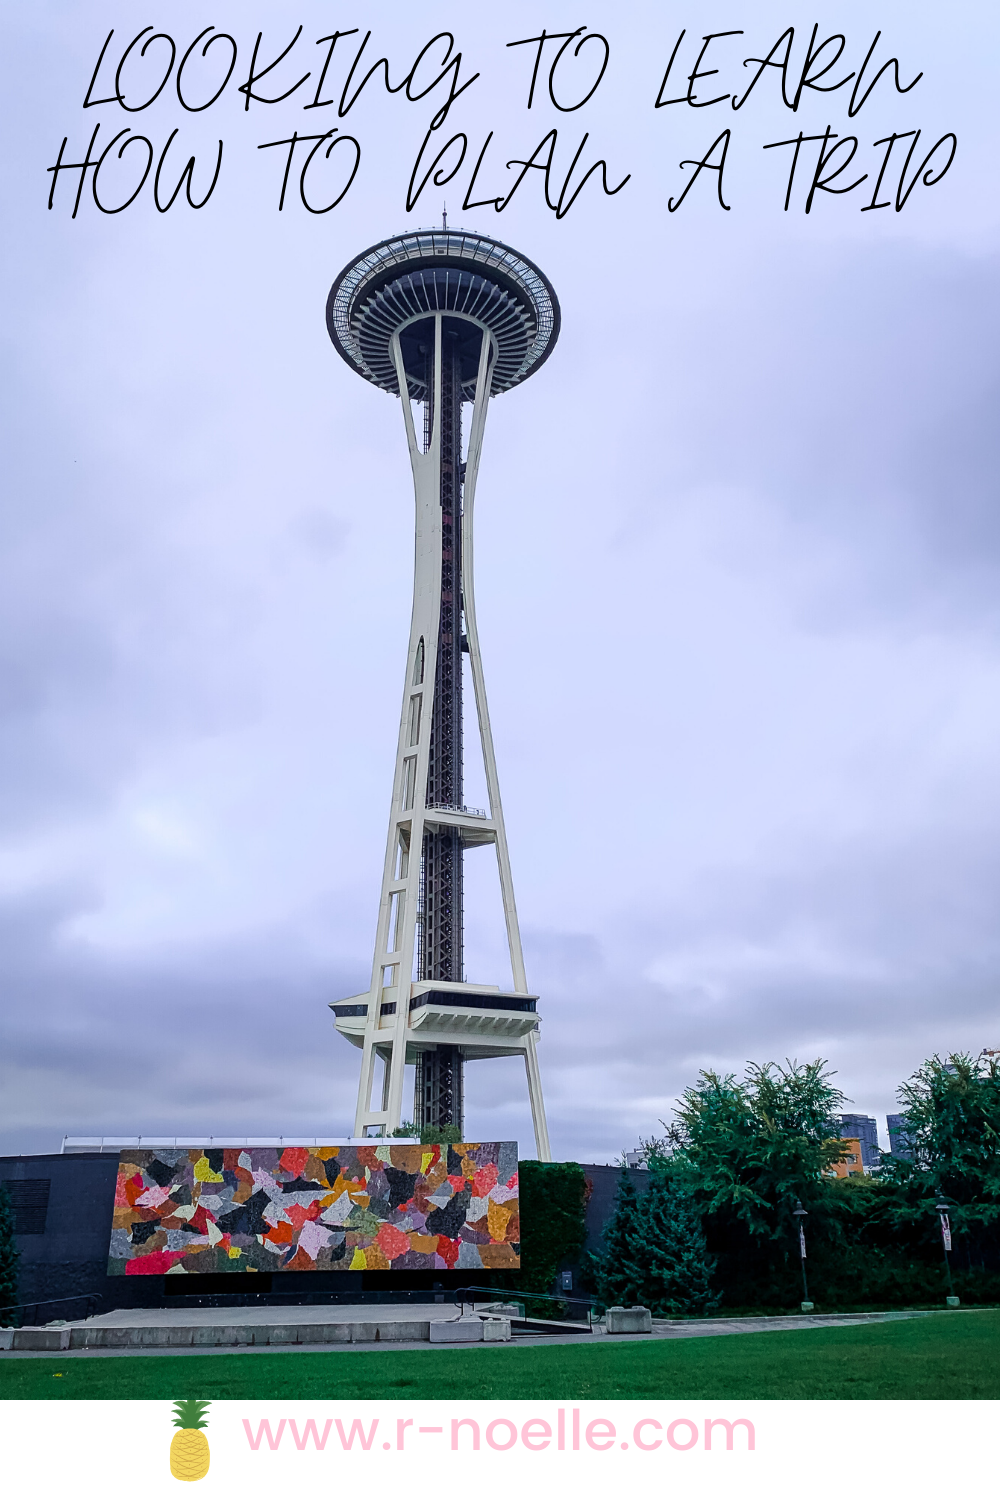 Plan the best trip to Seattle that you can have! There are necessary outlines needed to have the optimal trip you possibly can.